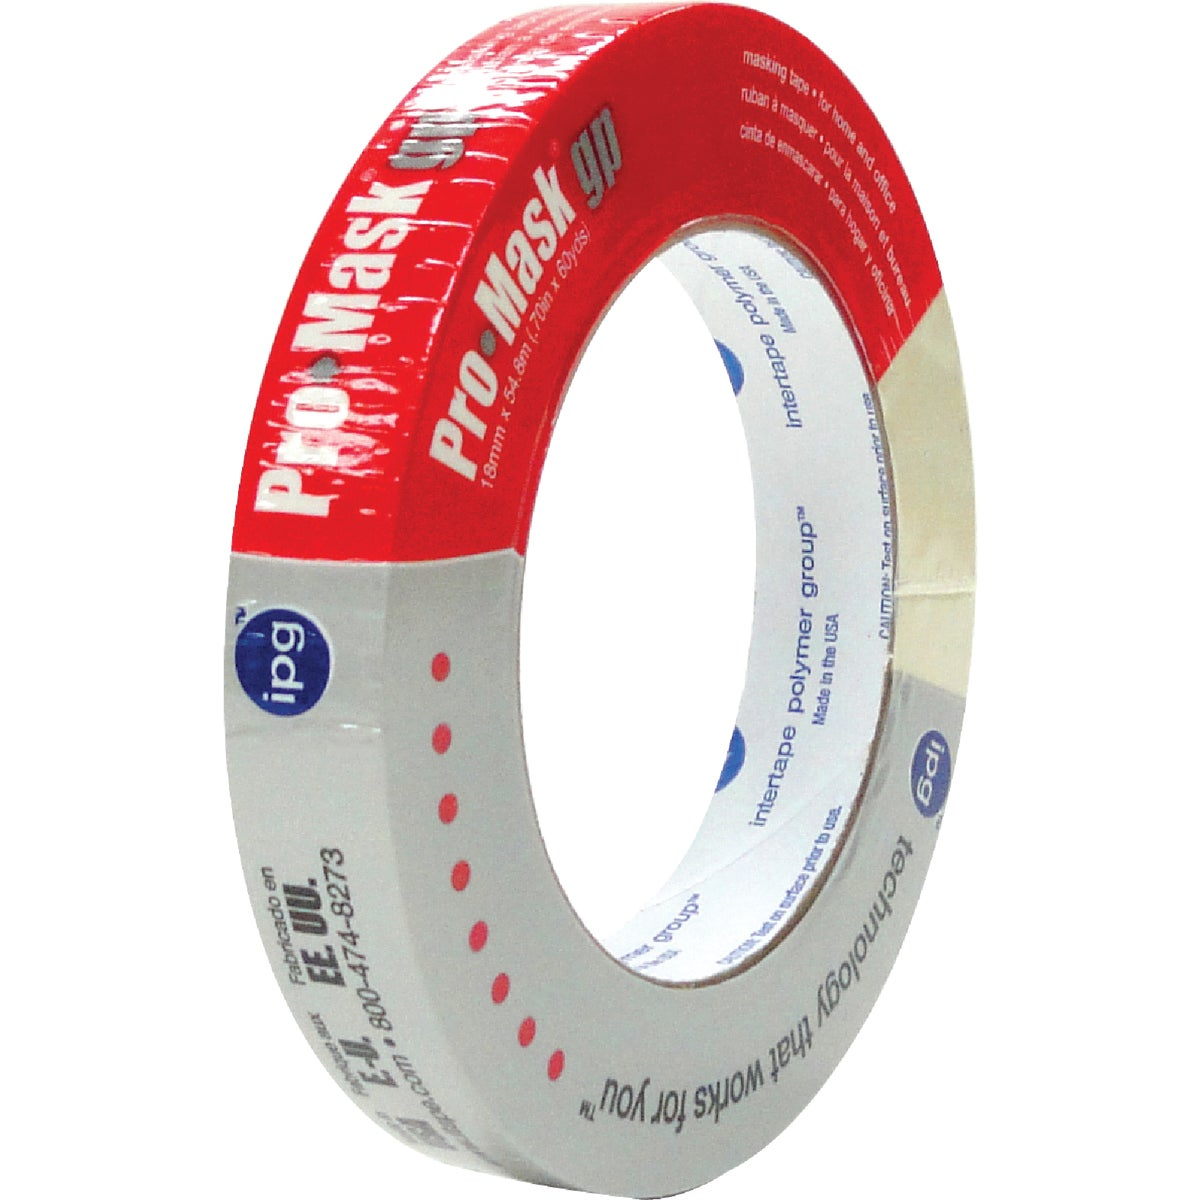 "3/4"" G/P MASKING TAPE - 5100 by Intertape Polymer"